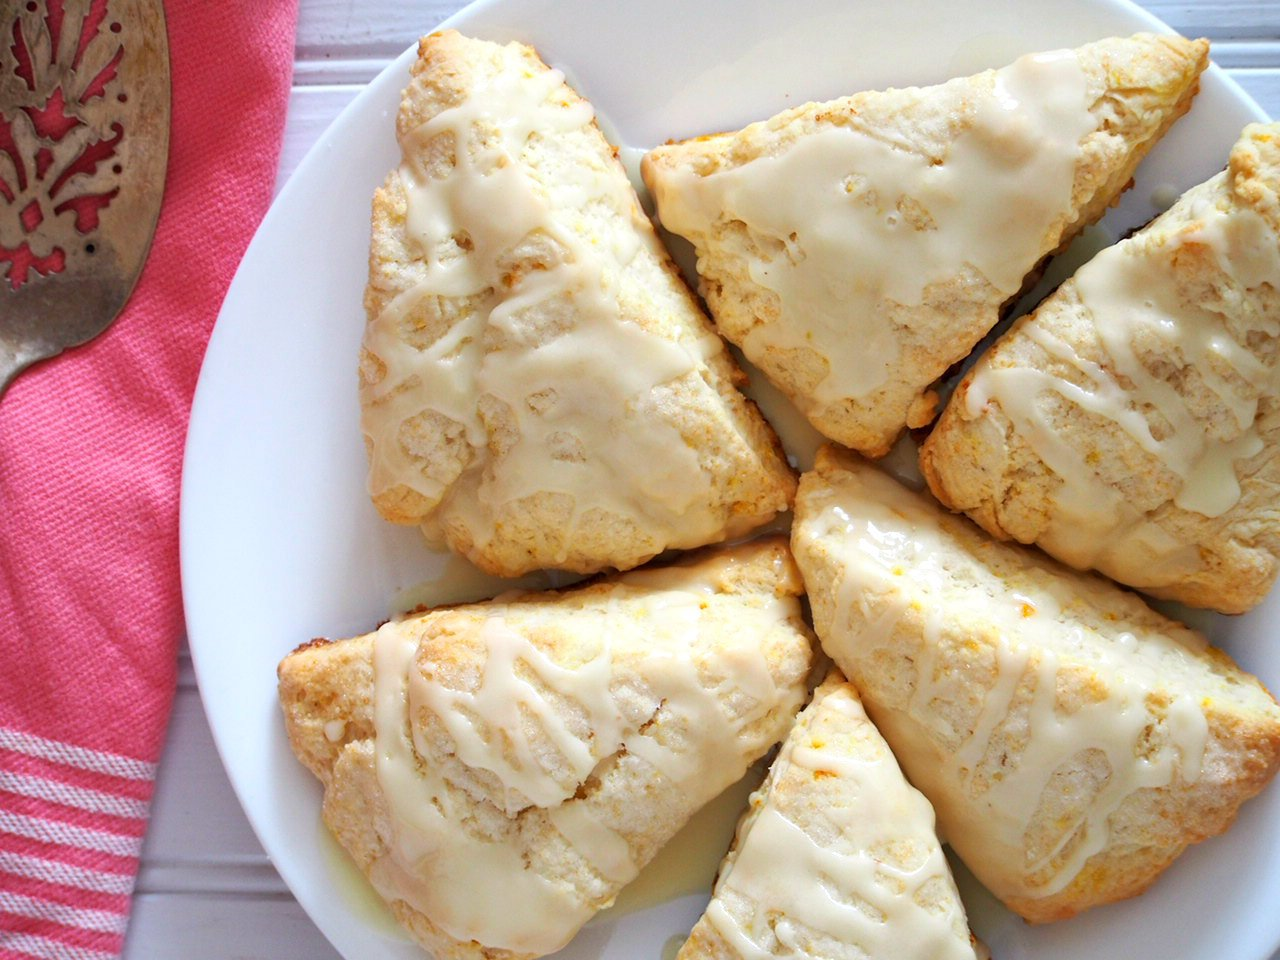 These melt in your mouth Honey Scones are even more delightful glazed with citrusy sweet calamansiglaze. Have them for breakfast, snack or even as desserts, you can't go wrong with these delicious treats any time of the day.